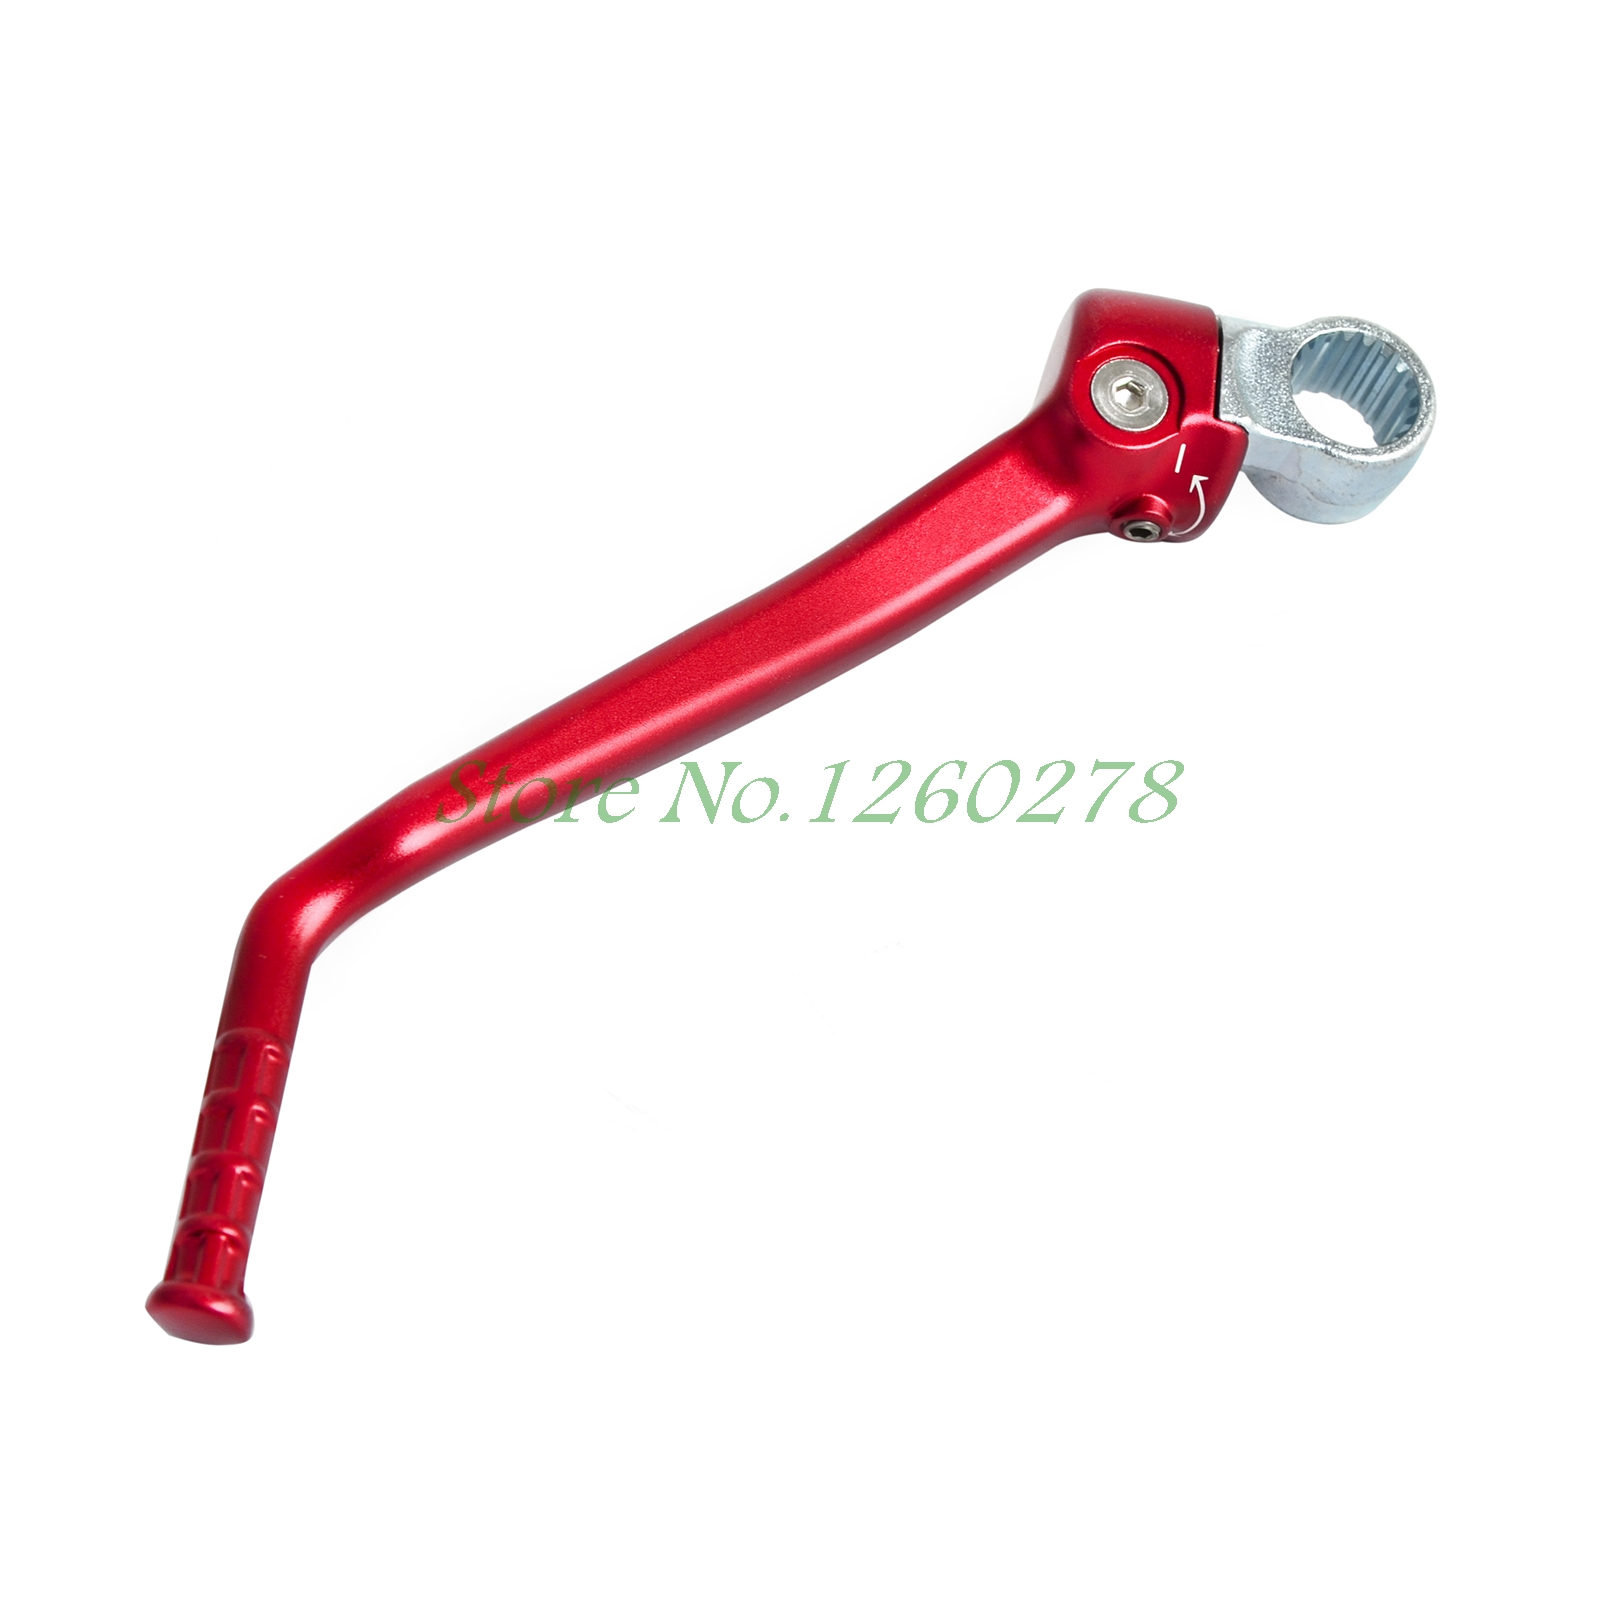 Motorcycle Forged Kick Start Lever Pedal For Honda CRF150R 2007-2017 CRF150RB Expert 2013-2017 Motocross Enduro Dirt Bike